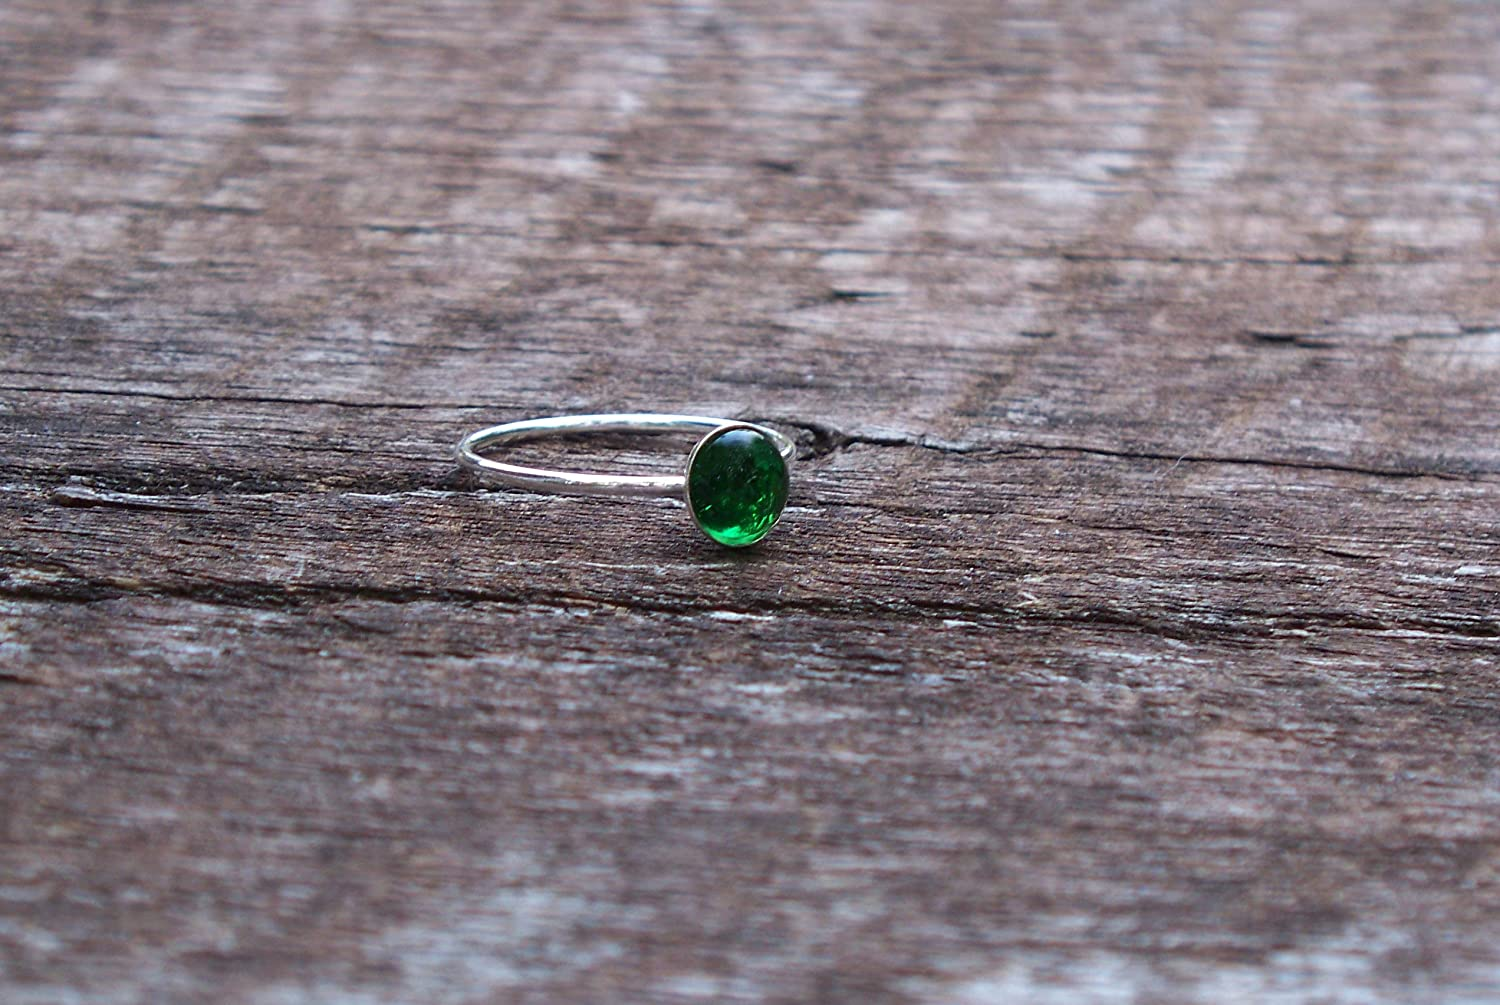 Recycled Vintage 1960s Green Beer Bottle Sterling Silver Stacking Ring